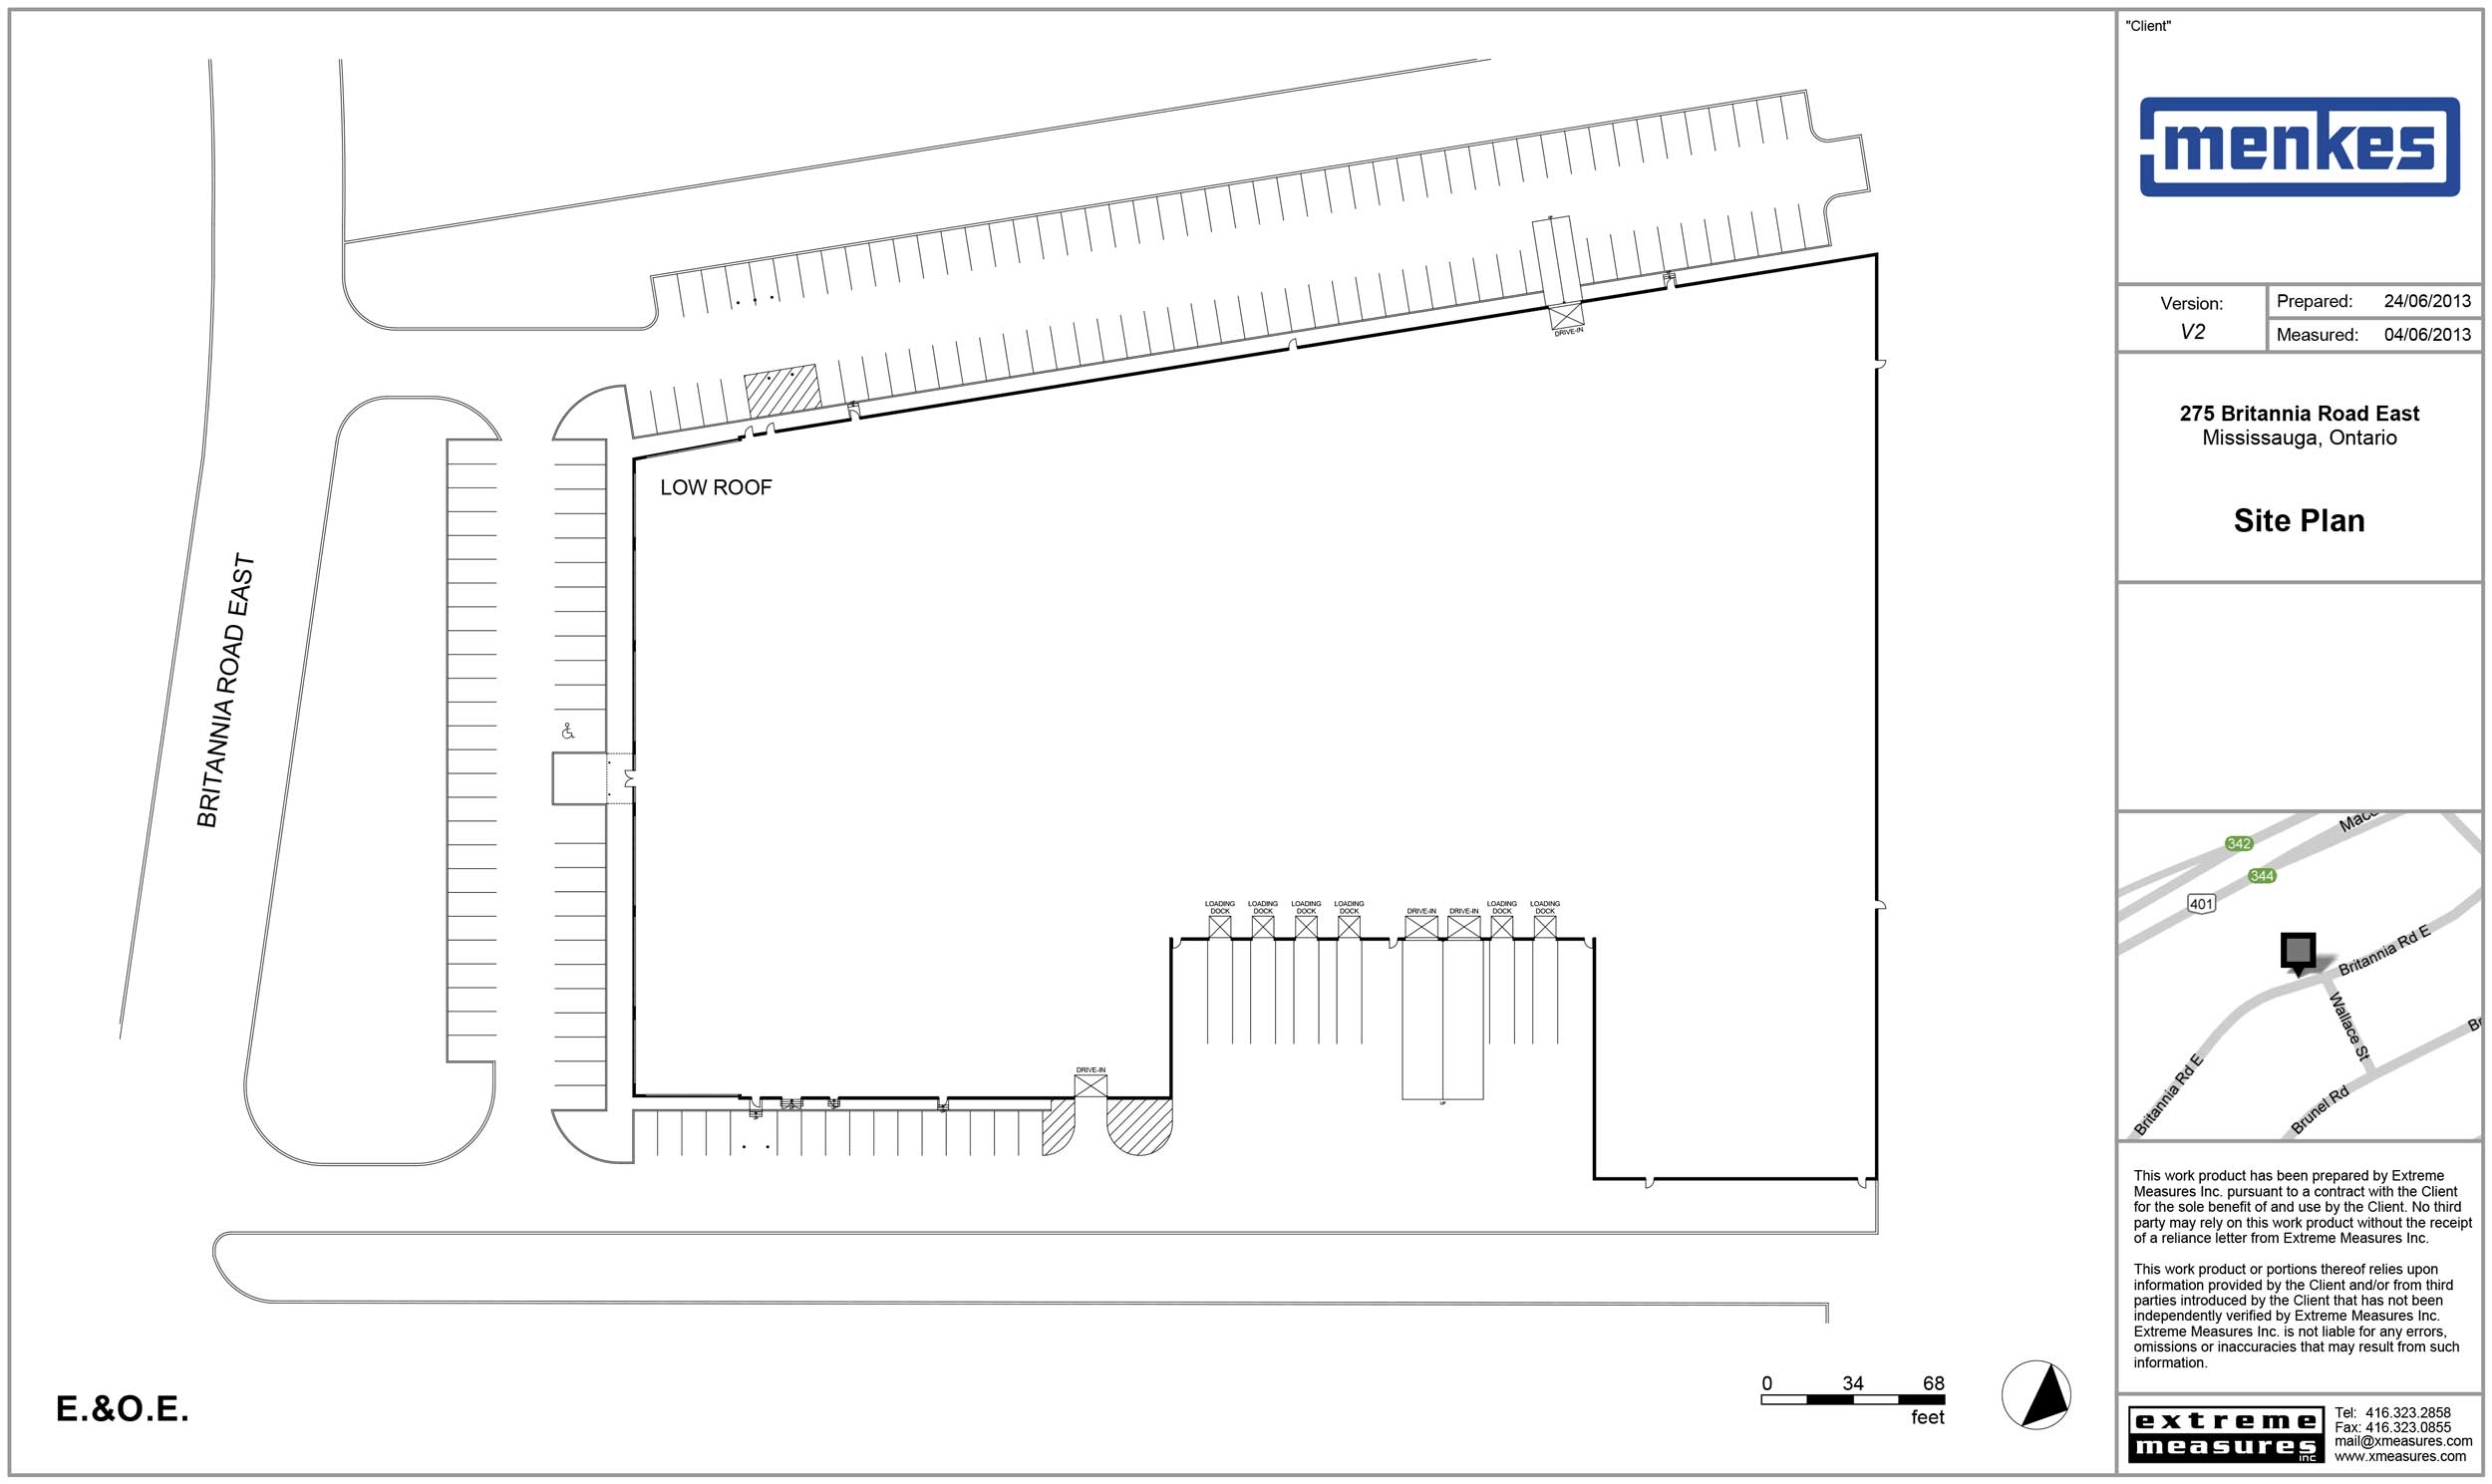 275 Britannia Road E Site Plan